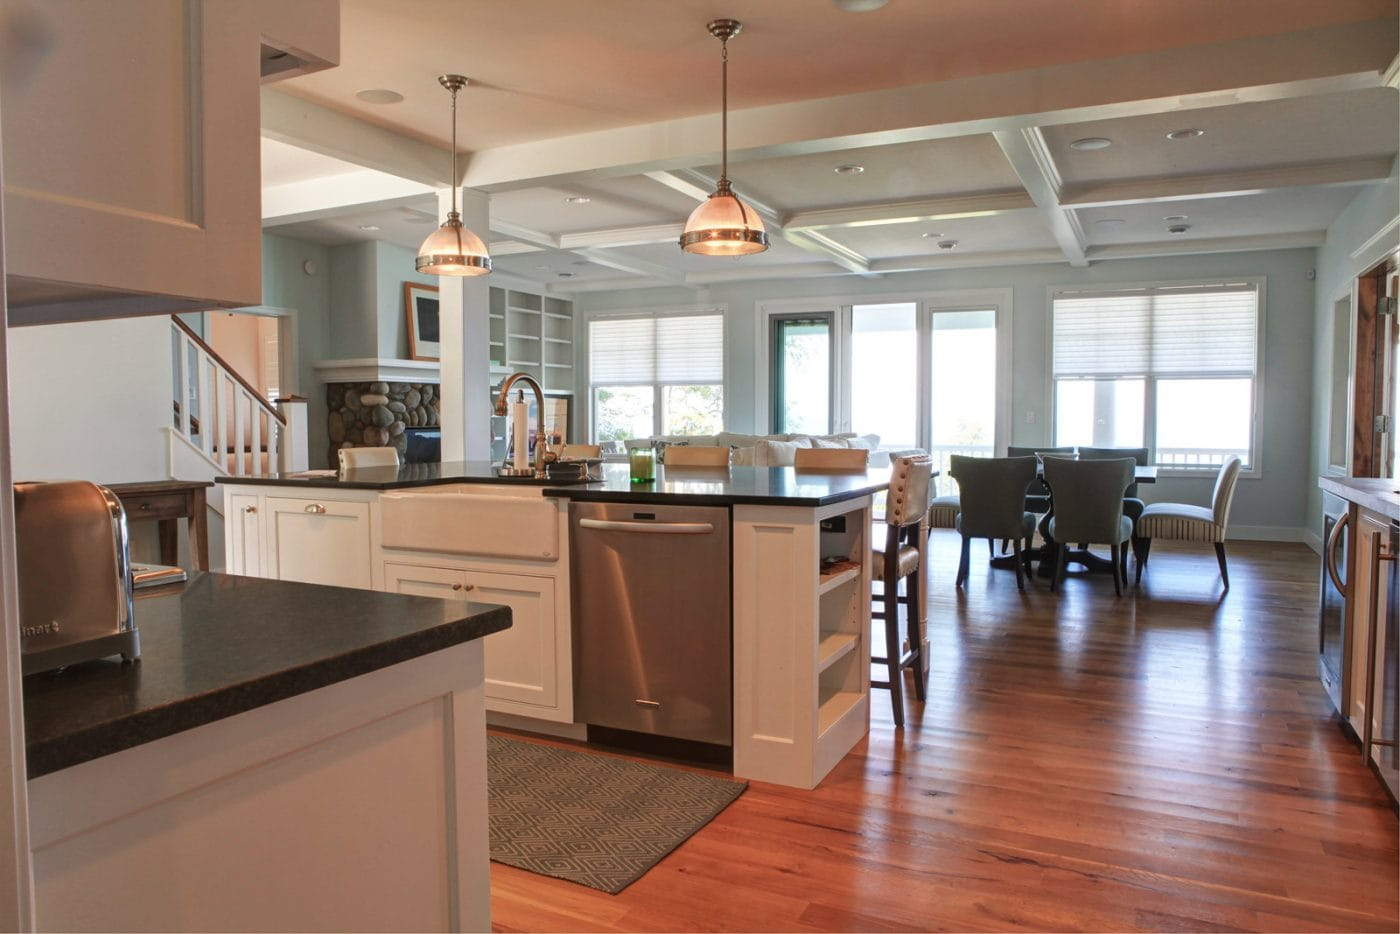 Beach House Kitchens and Baths, Lake Michigan Lakefront Homes